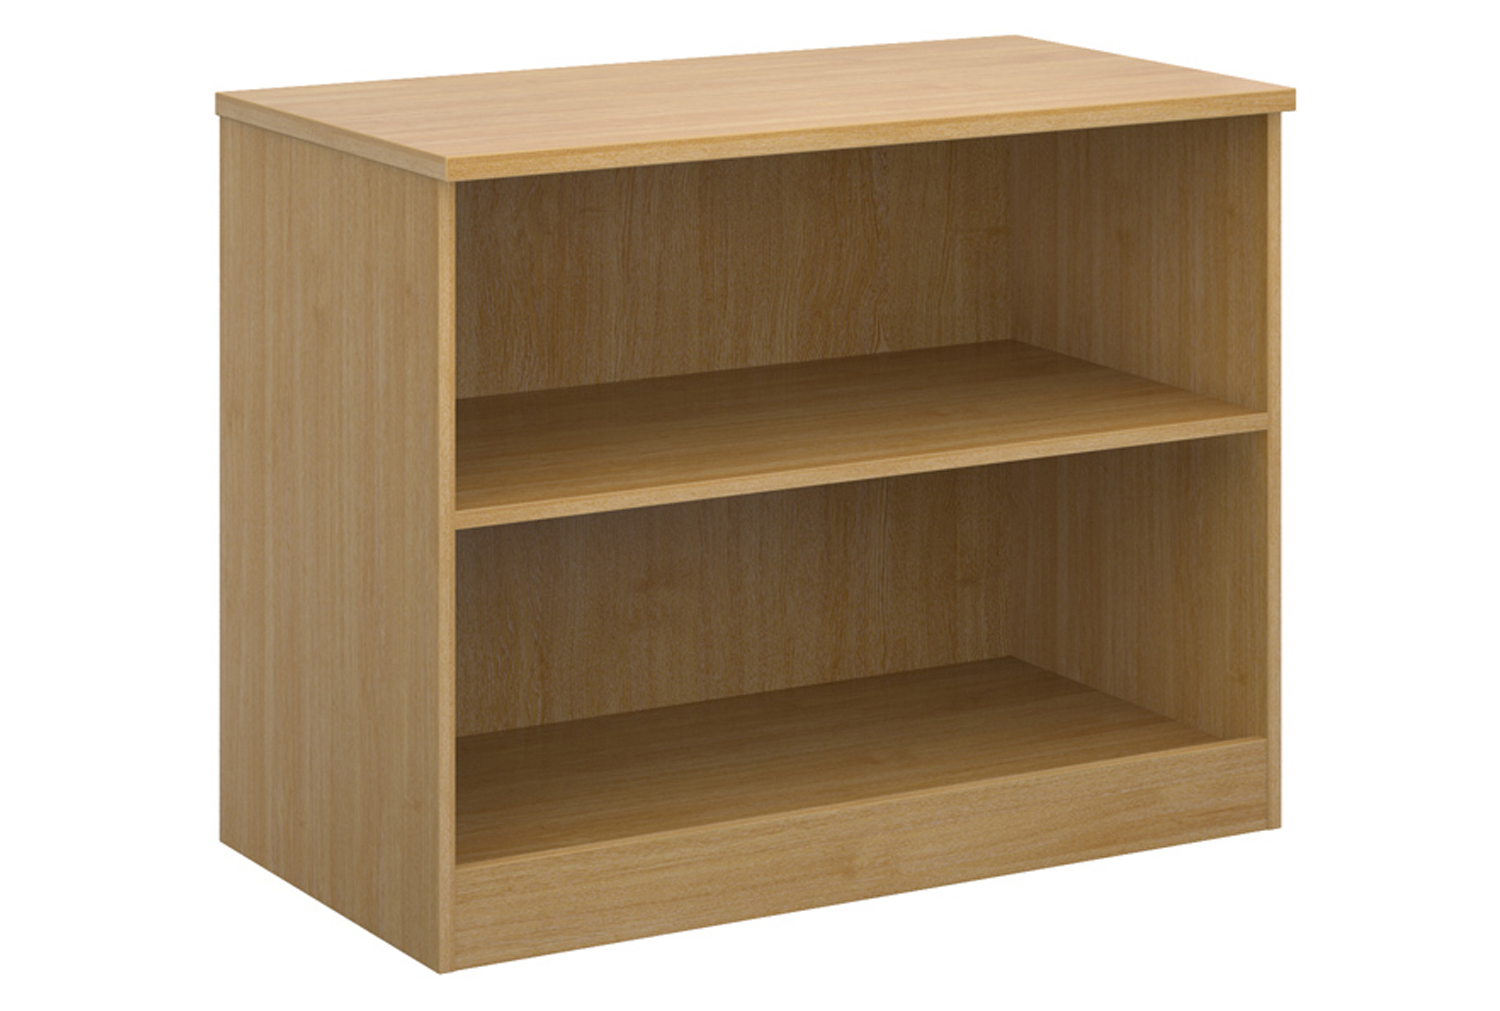 Image of High Capacity Bookcases, Oak